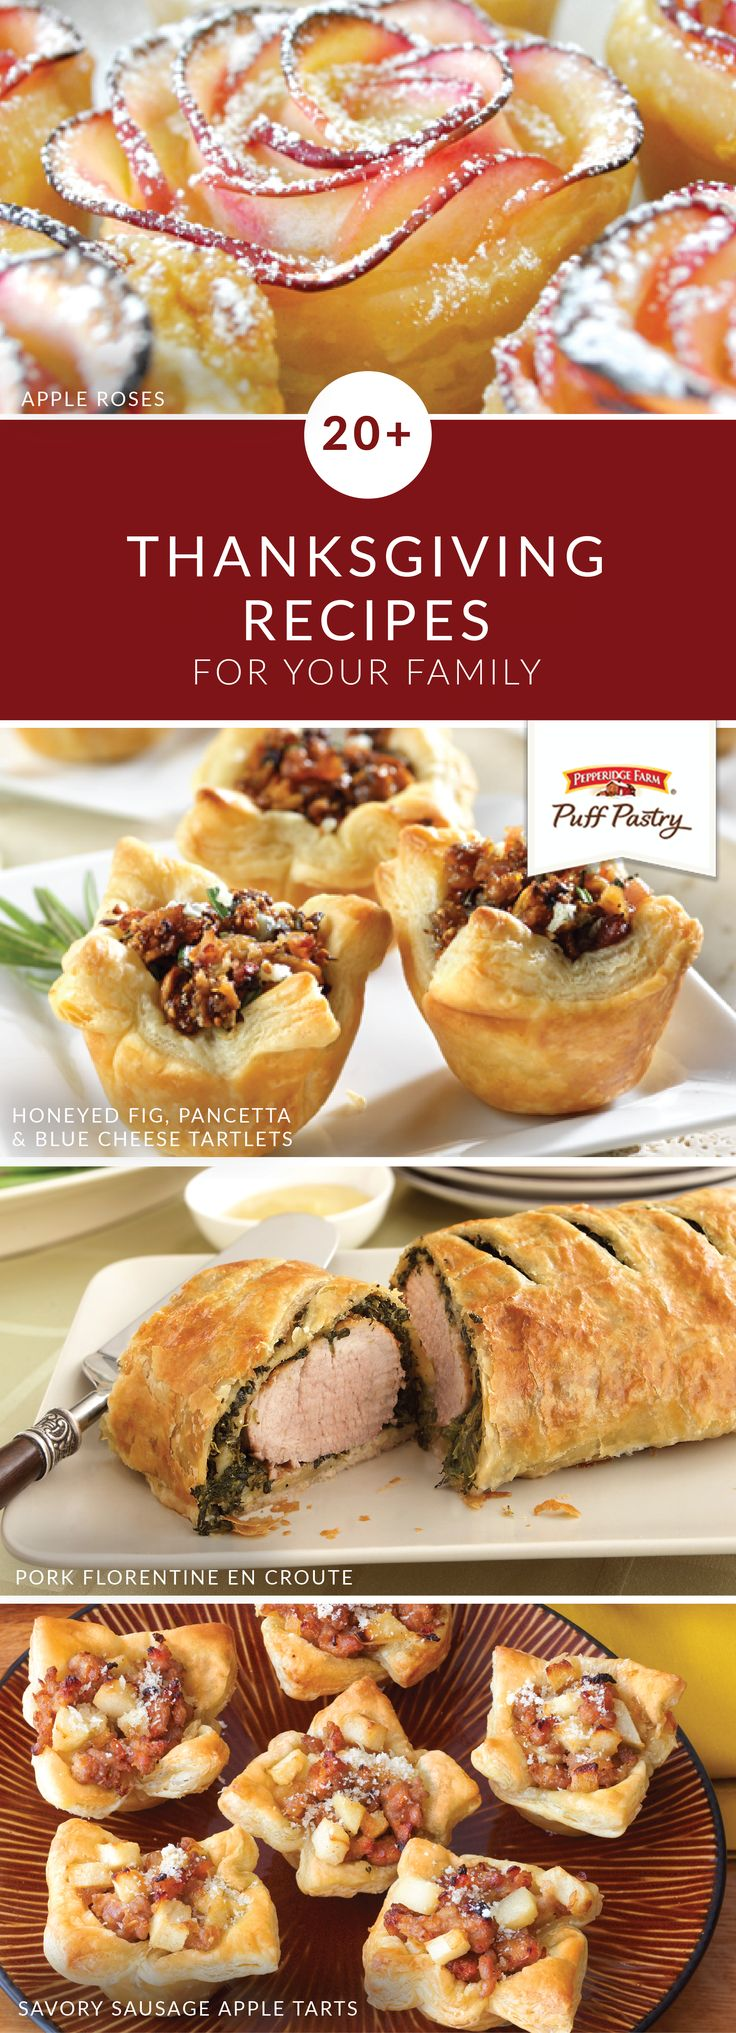 There's plenty to be thankful for when it comes to this collection of Thanksgiving recipes. With tasty Puff Pastry recipes like Pork Florentine En Croute; Sausage, Cranberry, and Stuffing Pastry; and Wrapped Pears with Vanilla Bean Sauce to choose from, you're sure to find an elegant dish for all of your holiday parties.